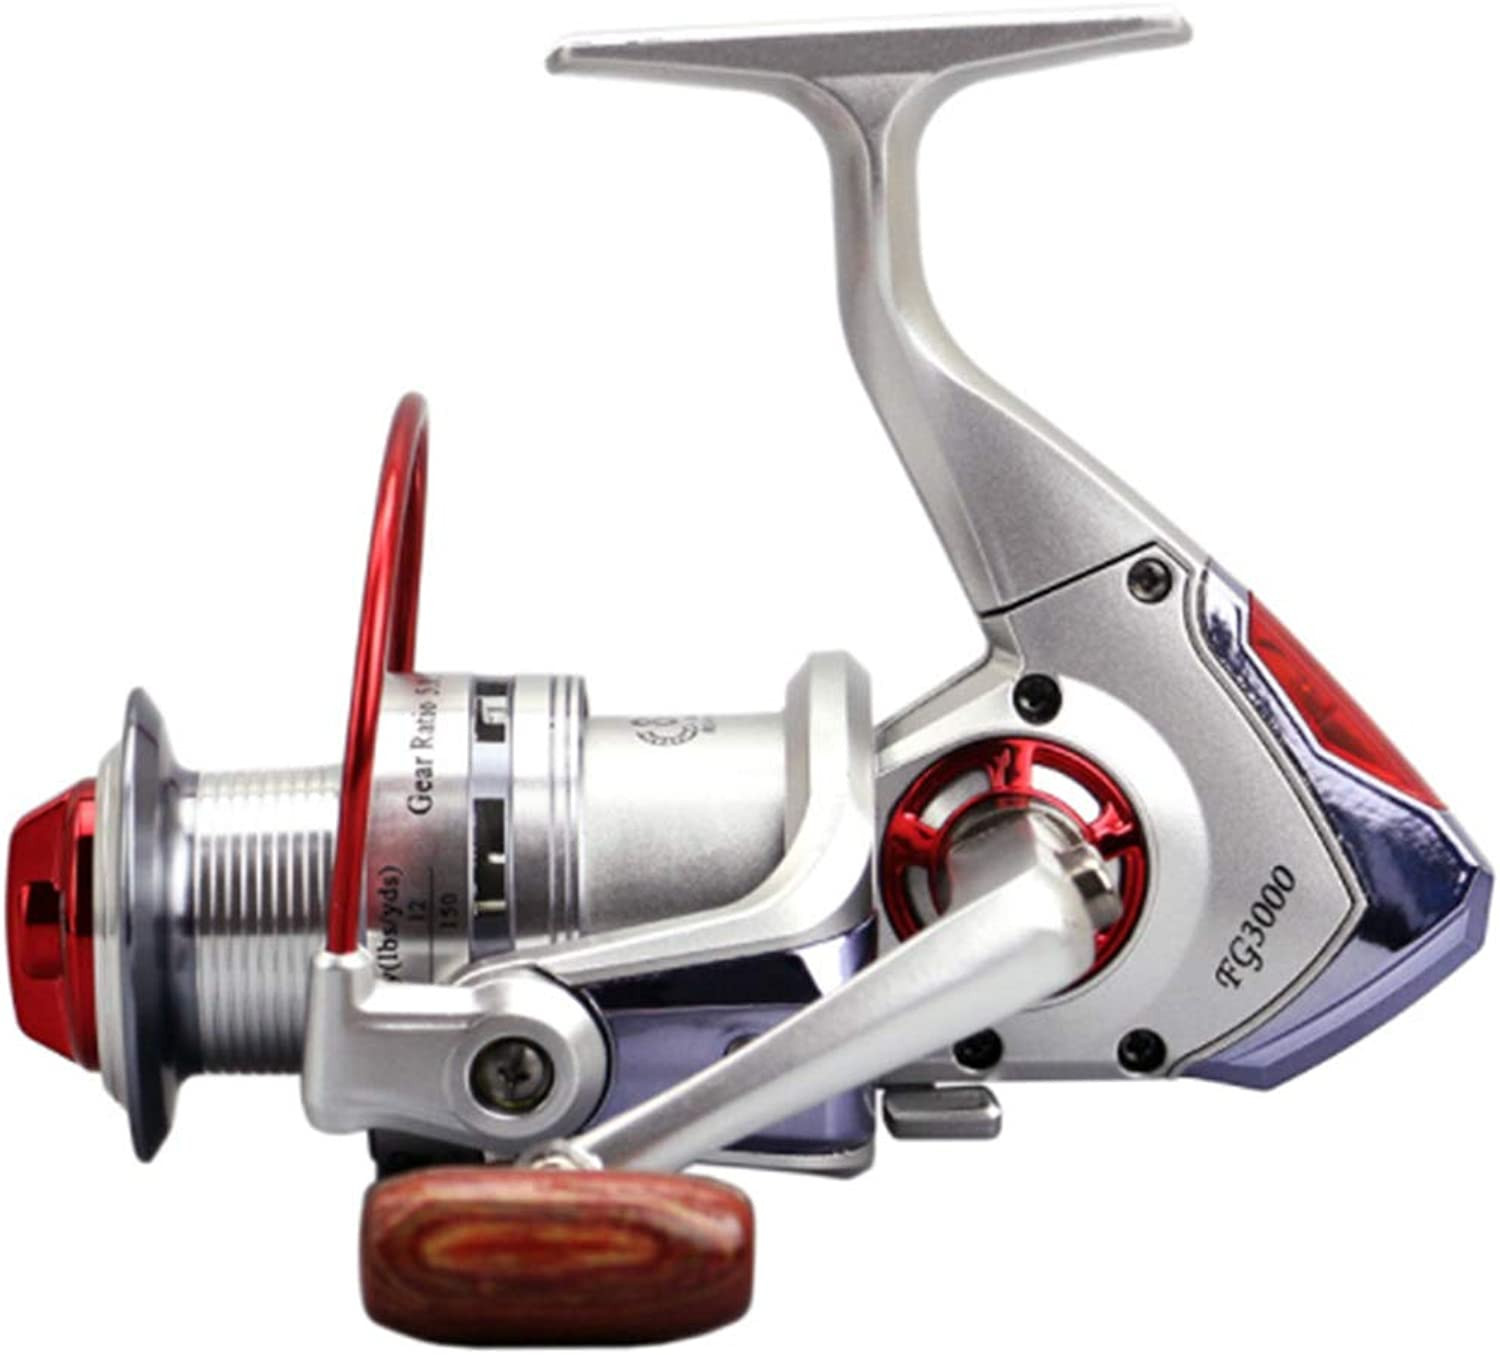 Carriemeow Spinning Fishing Reel 8+1 Bearings Left Right Interchangeable Handle for Saltwater Freshwater Fishing with Double Drag Brake System and LED Alarm